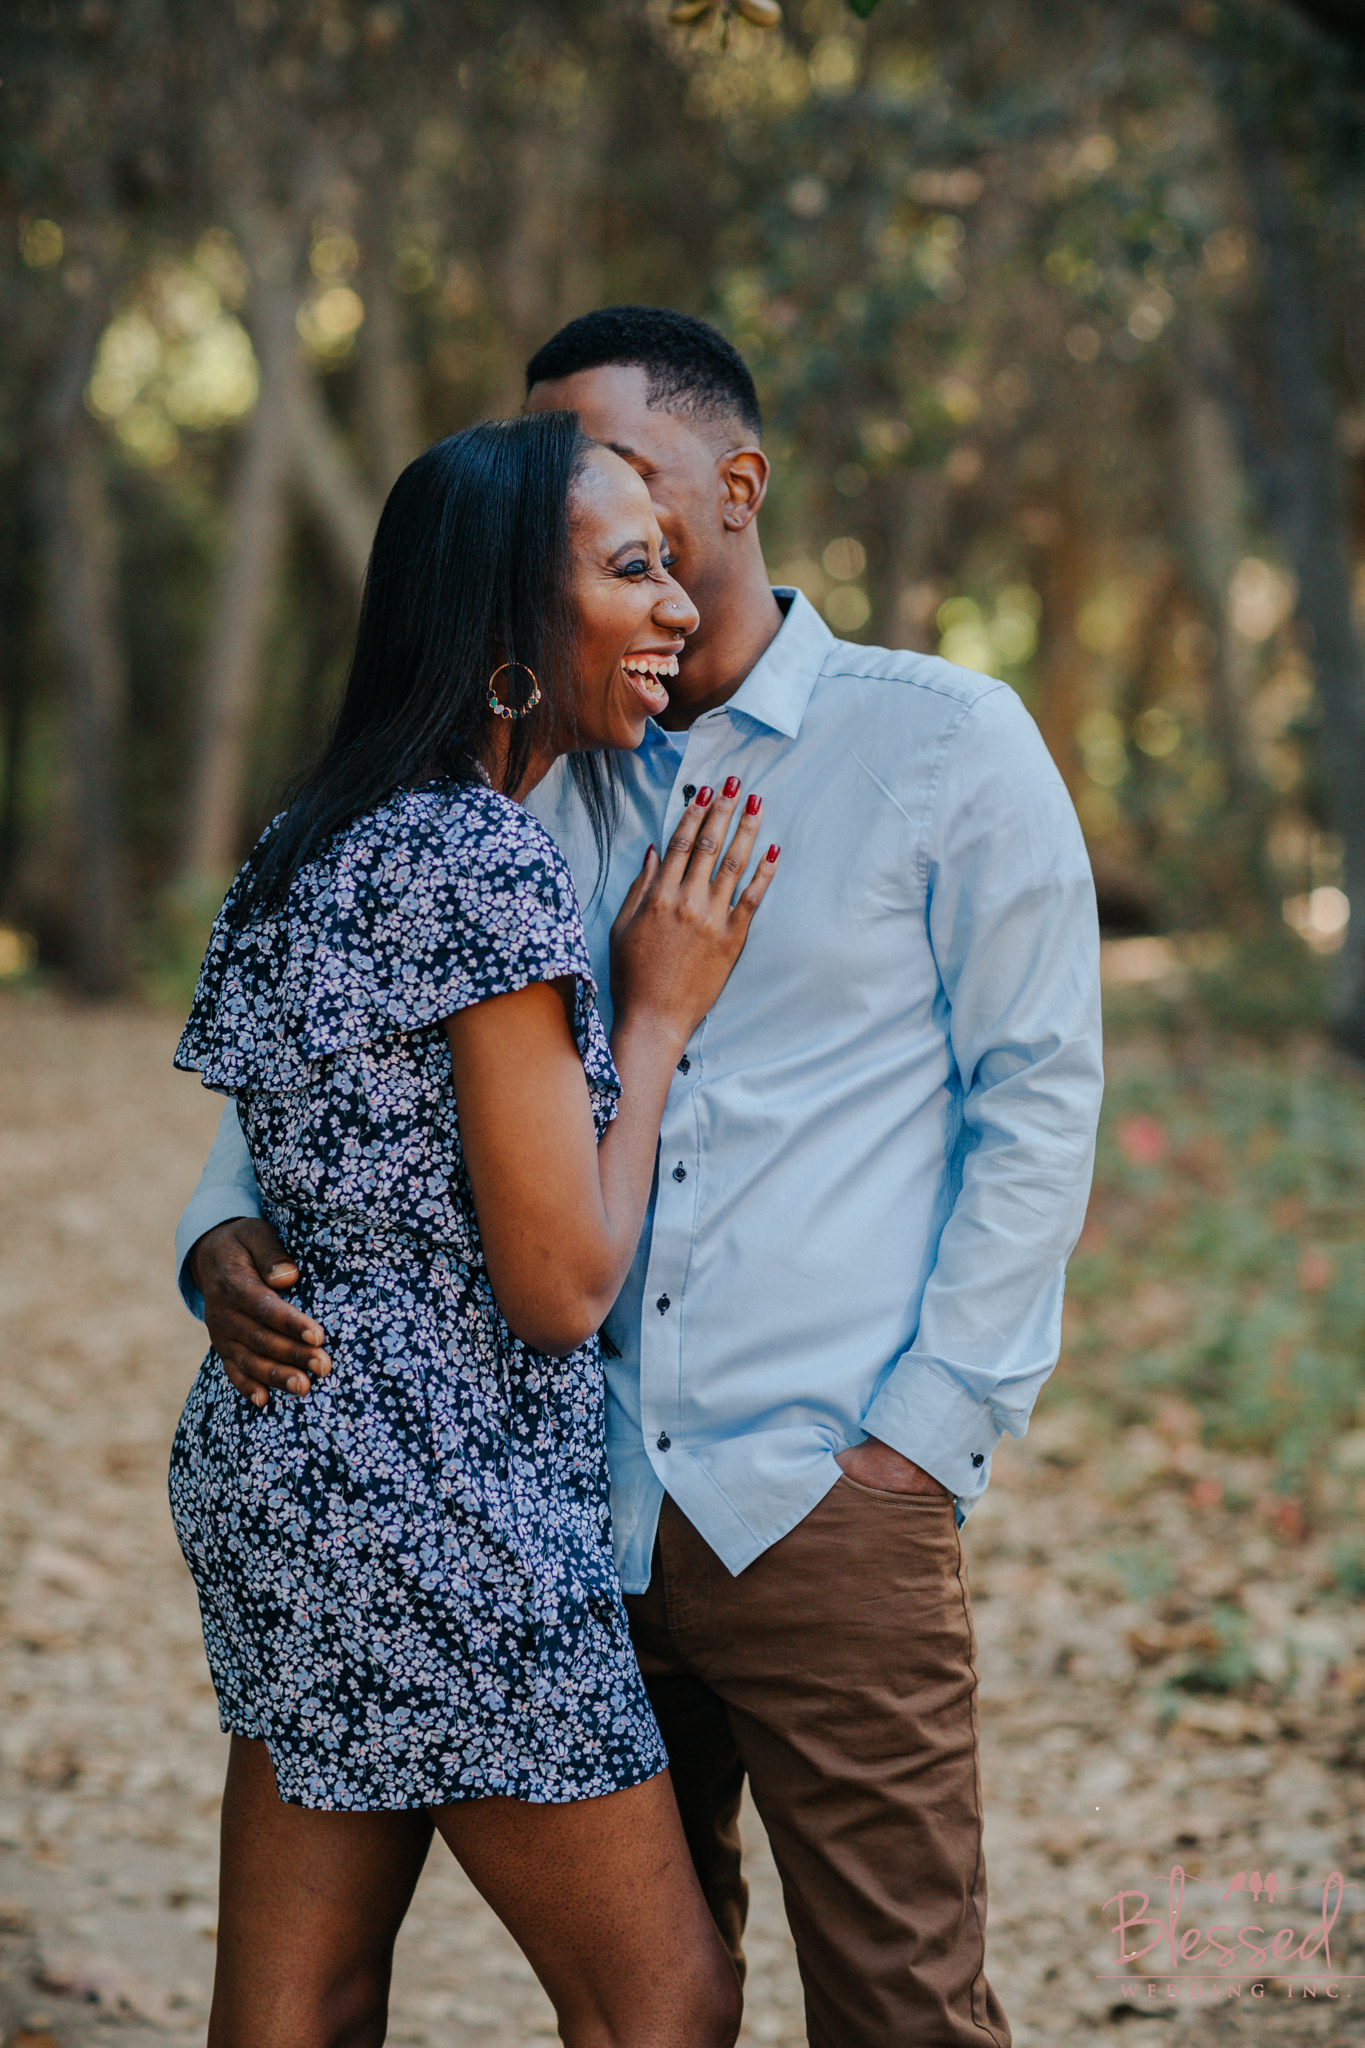 Marian Bear Park Engagement Session by Blessed Wedding Photography  (5 of 25).jpg